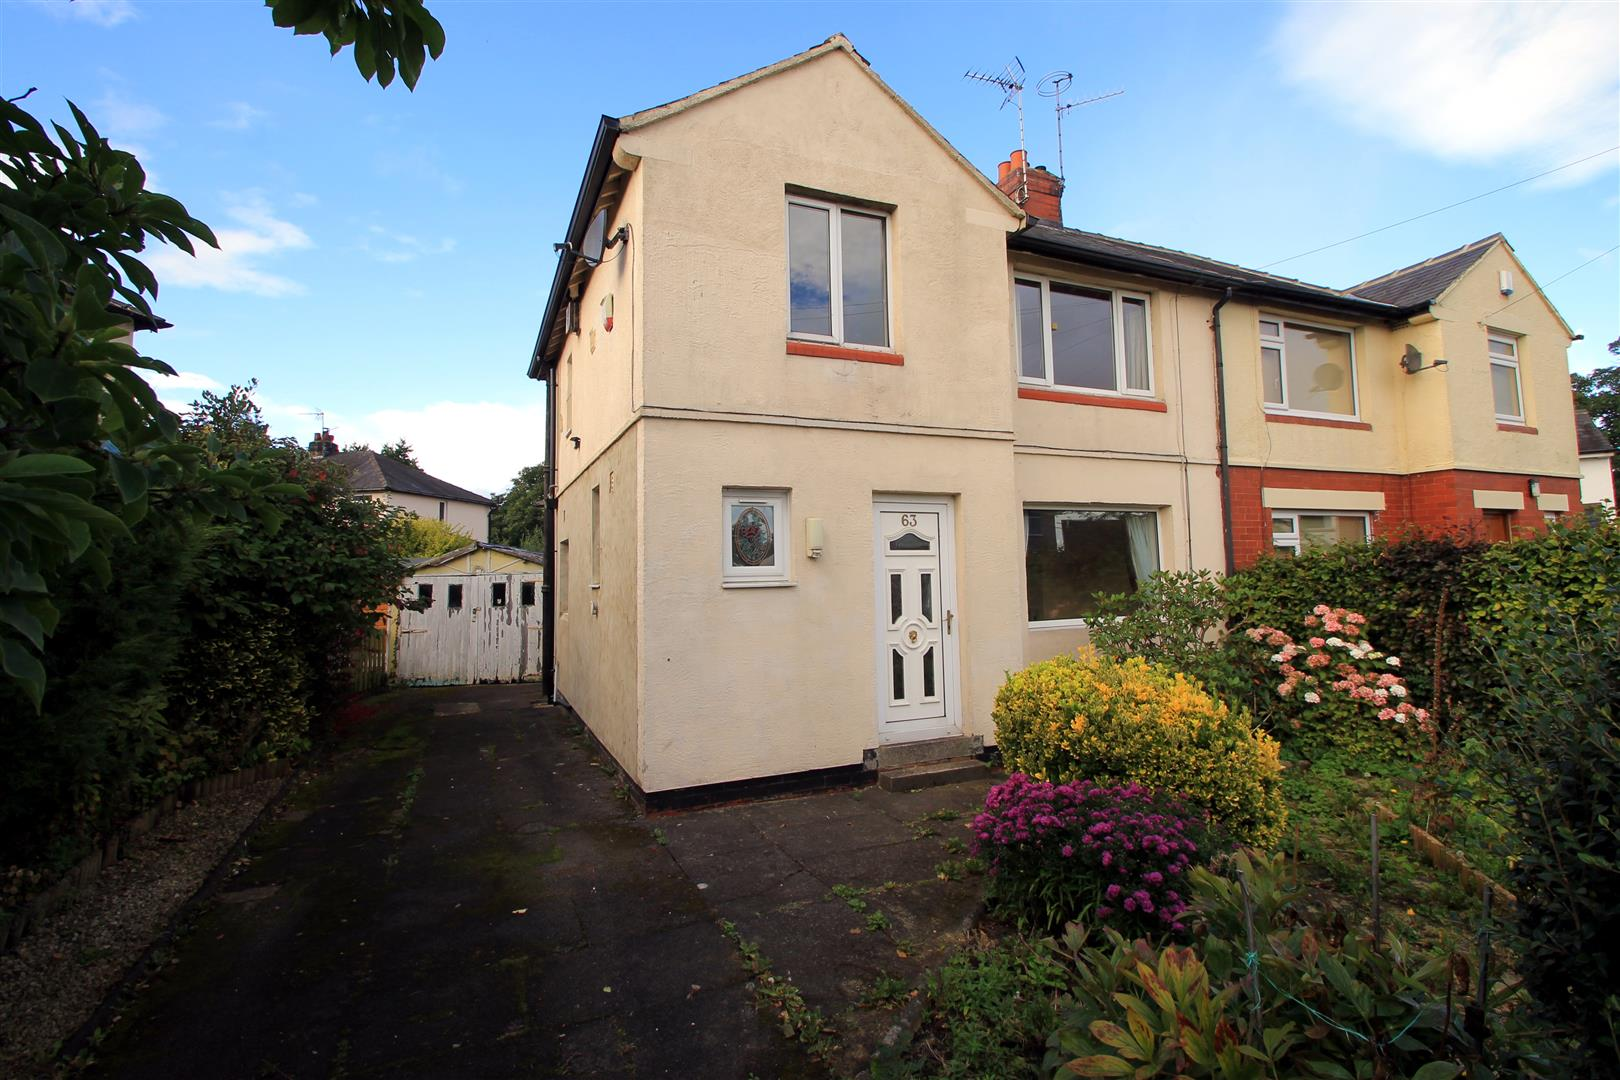 Leathley Crescent, LS29 6DH